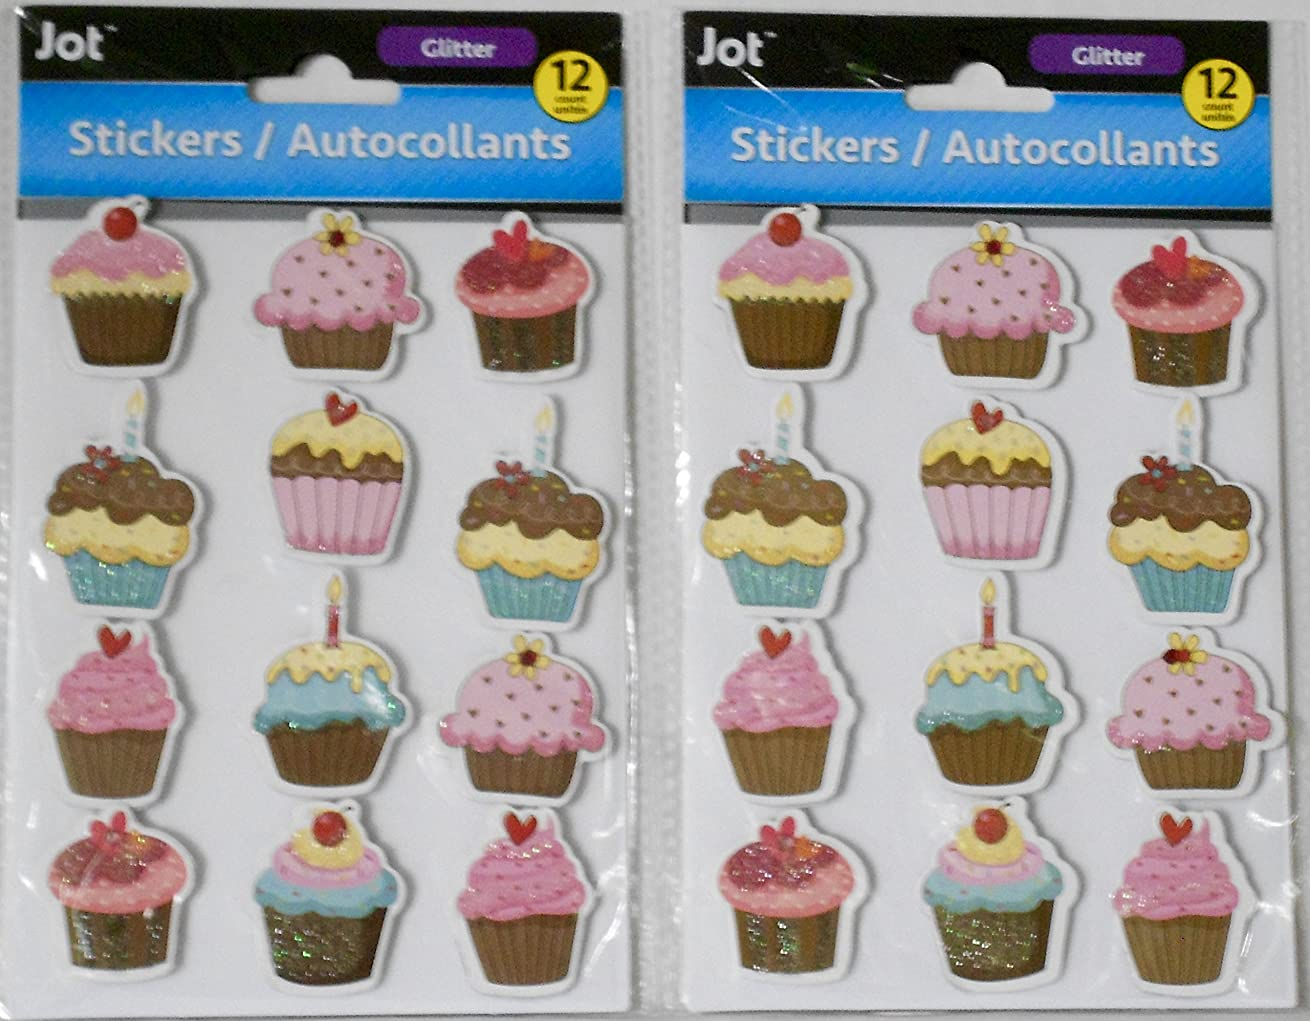 2 Packs Glittery Cupcakes Dimensional Stickers/Embellishments Bundle